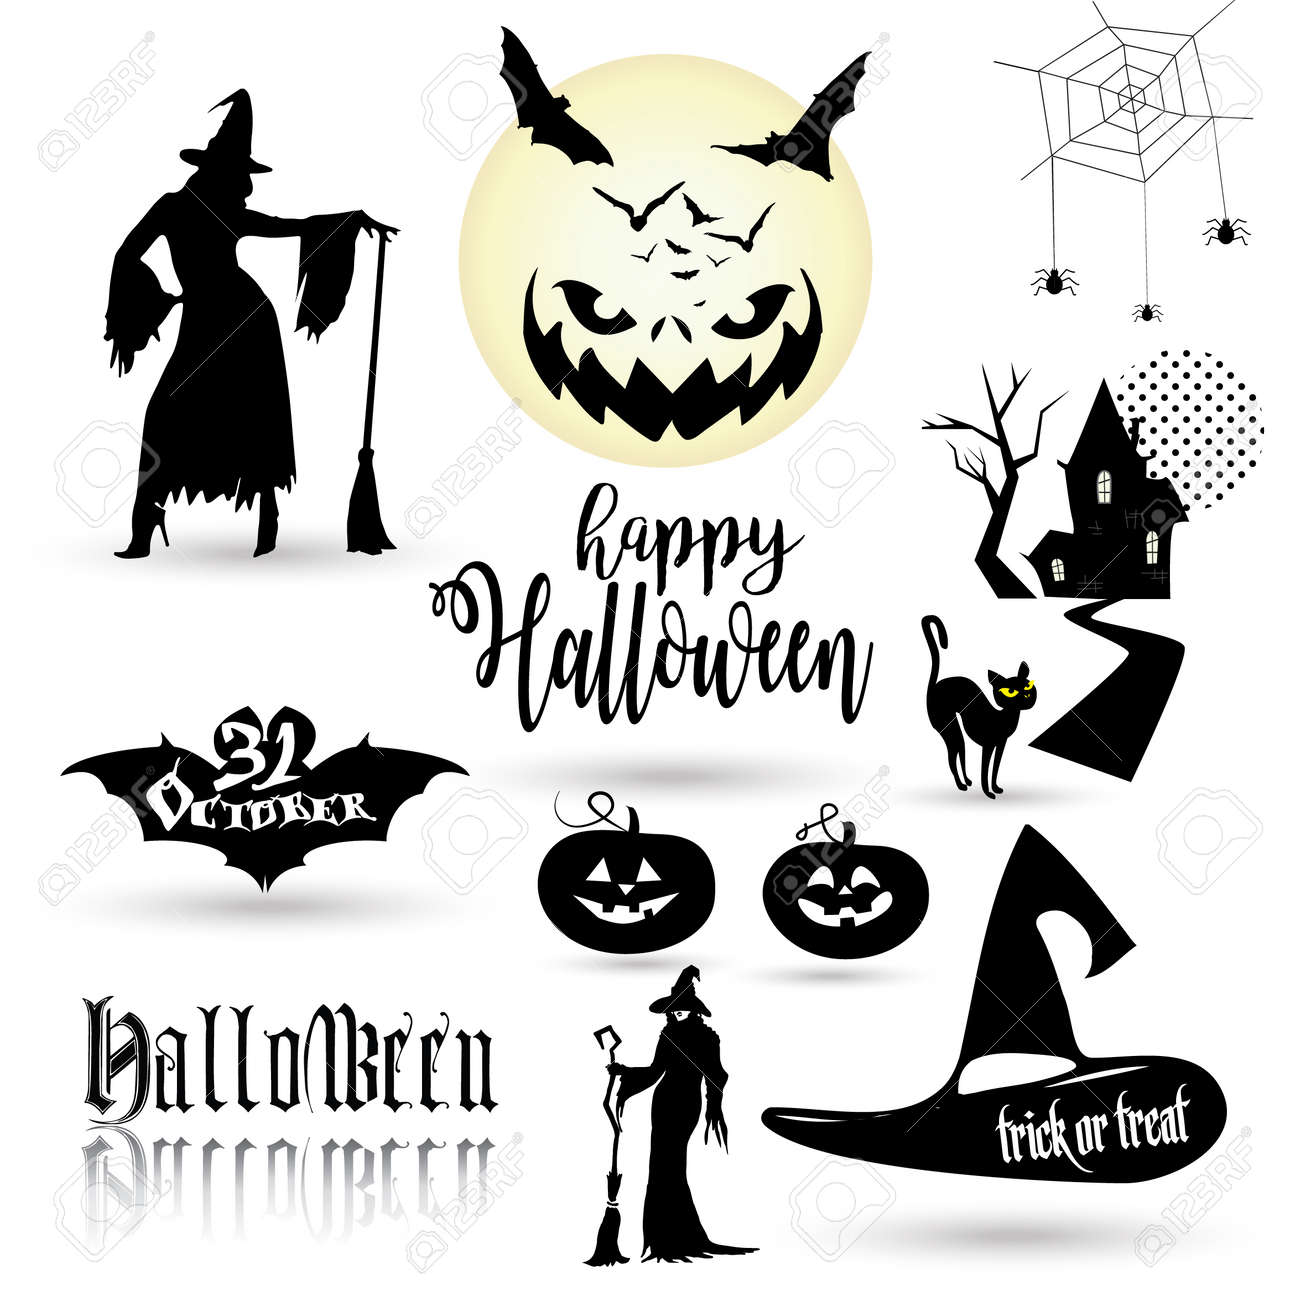 Good Wallpaper Halloween Magic - 83928088-halloween-wallpaper-with-halloween-symbols-halloween-pumpkin-lantern-logo-bat-icon-witch-woman-silho  Trends_778914.jpg